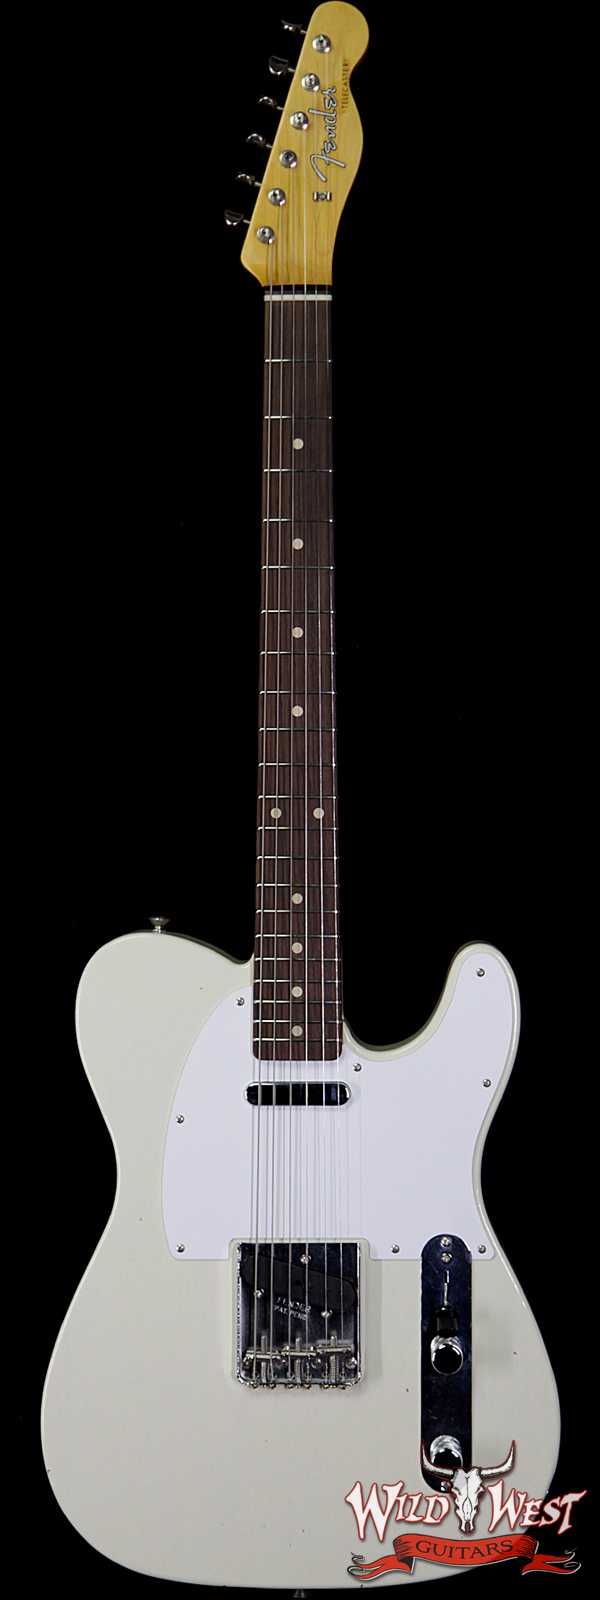 Fender Custom Shop Jimmy Page Signature Telecaster Journeyman Relic AAA Rosewood Slab Board White Blonde R101642